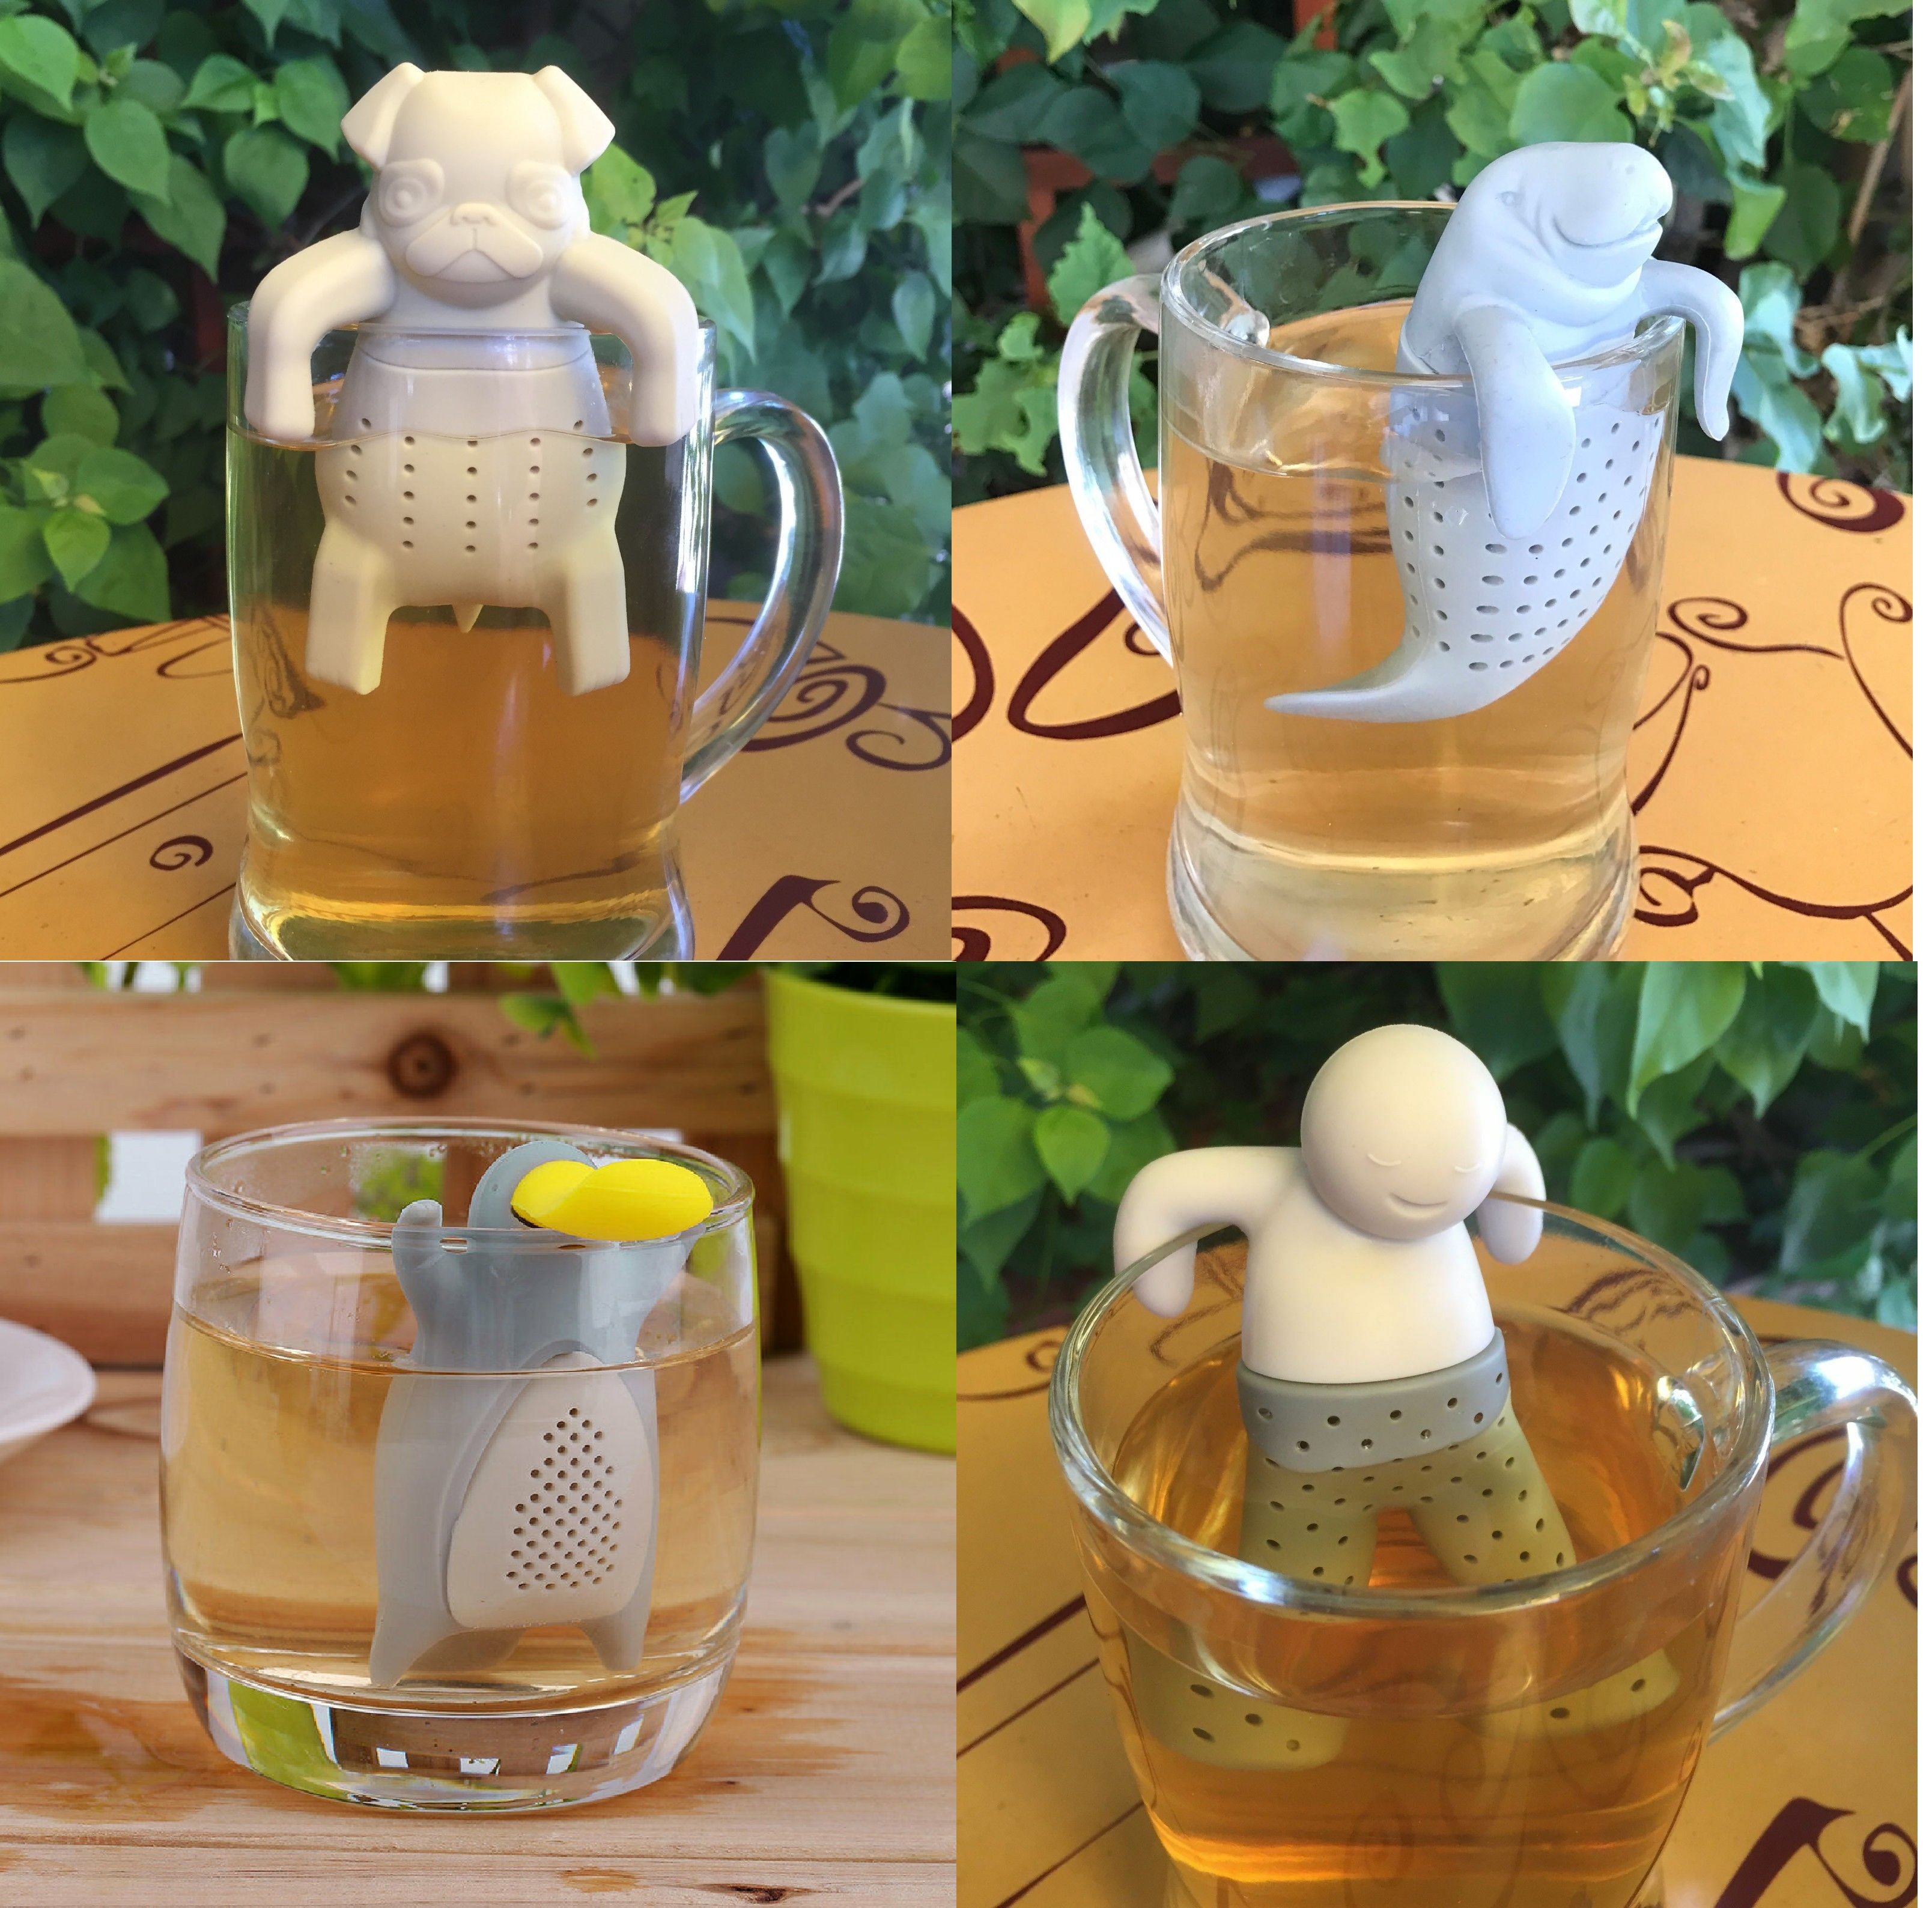 Tea Infusers novelty from